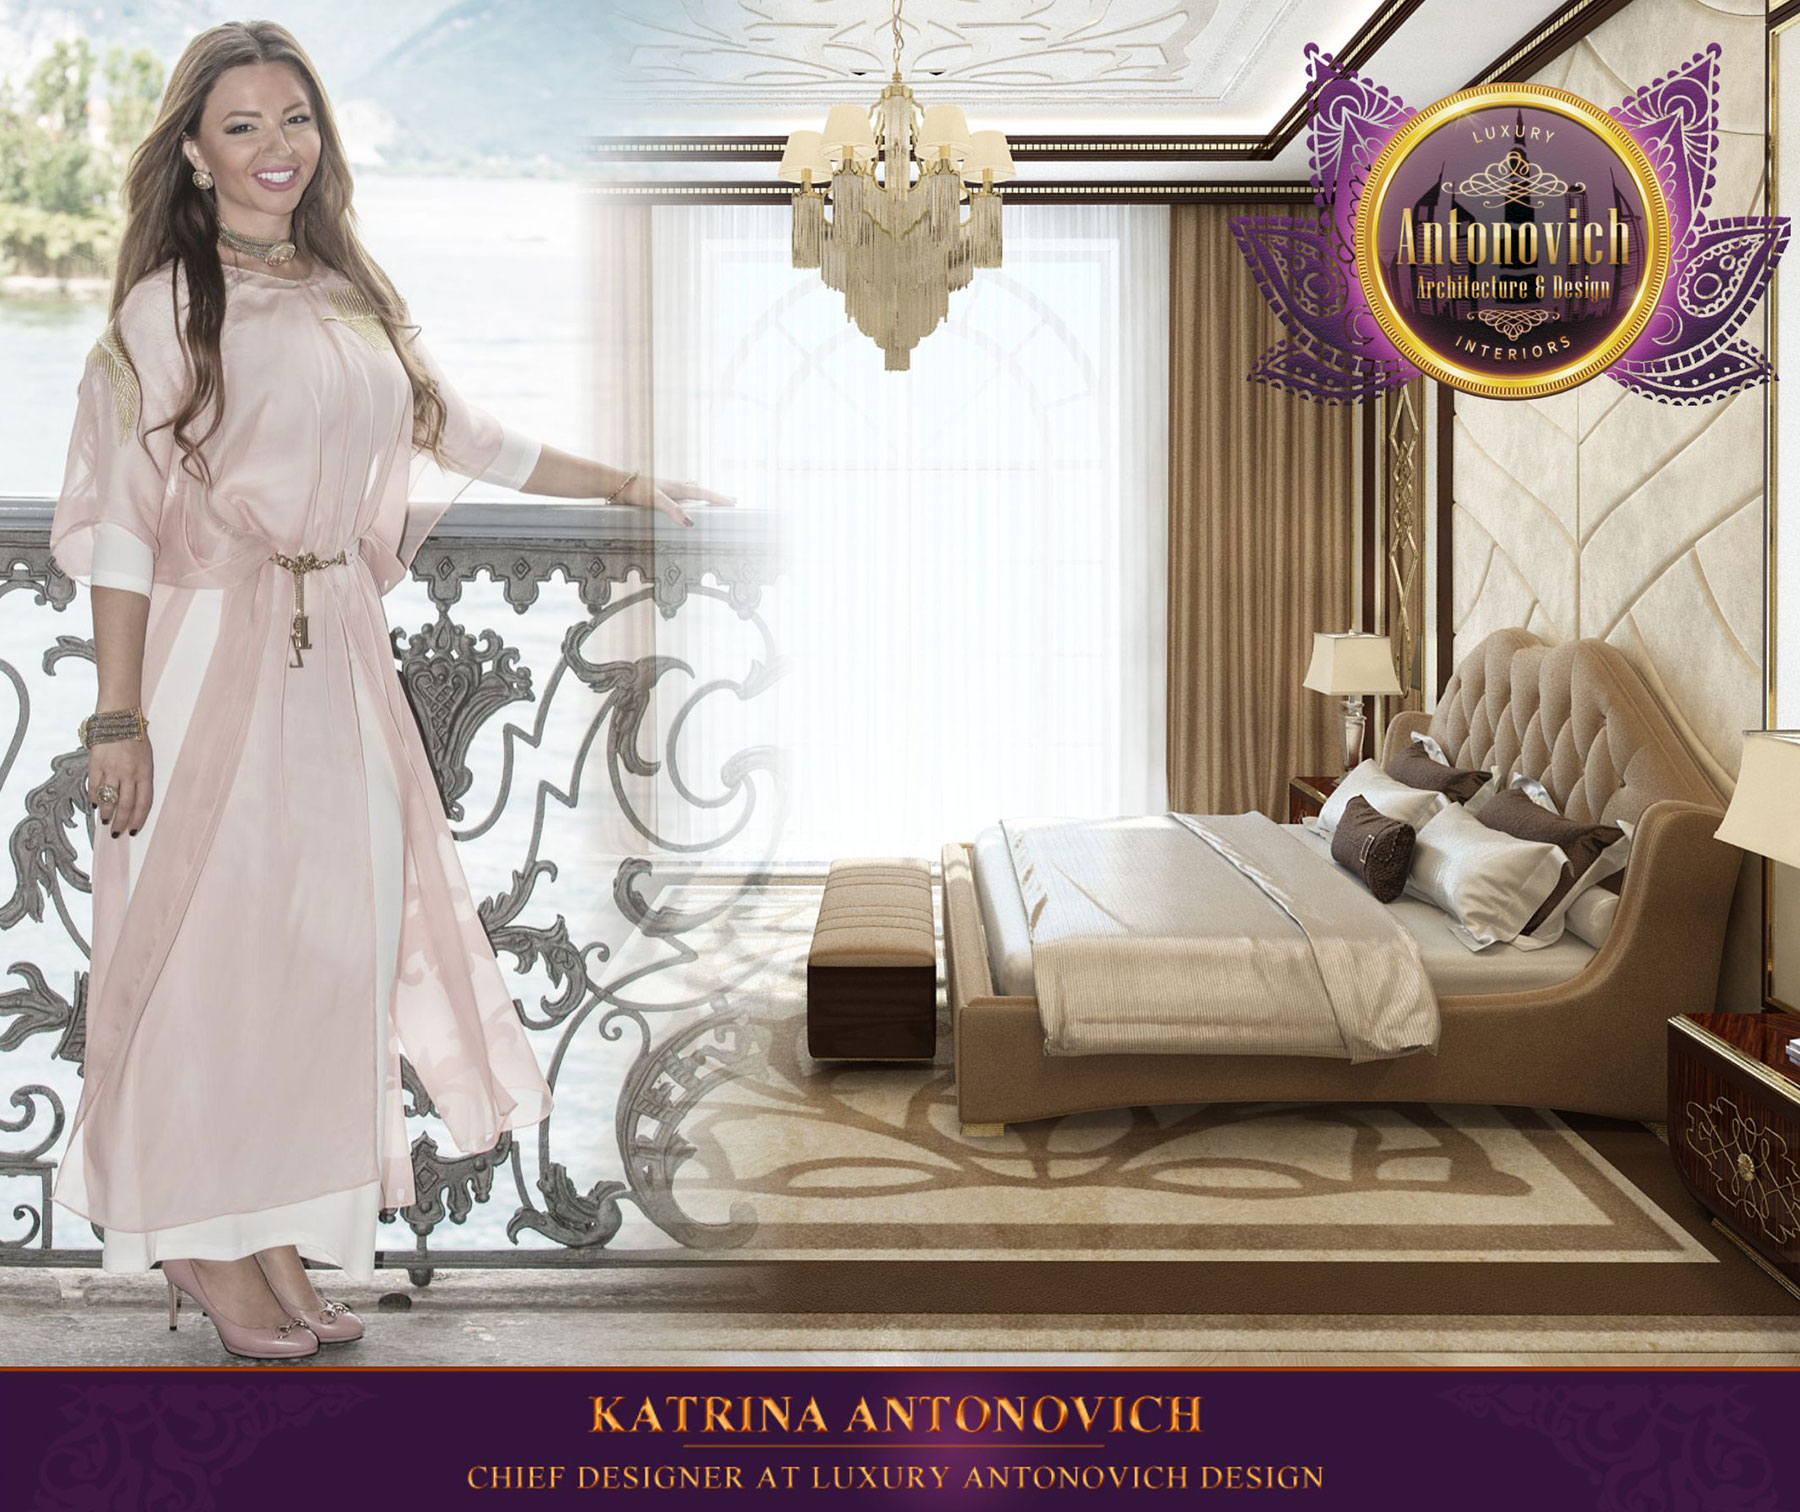 Katrina Antonovich Luxury Interior Design: LUXURY ANTONOVICH DESIGN